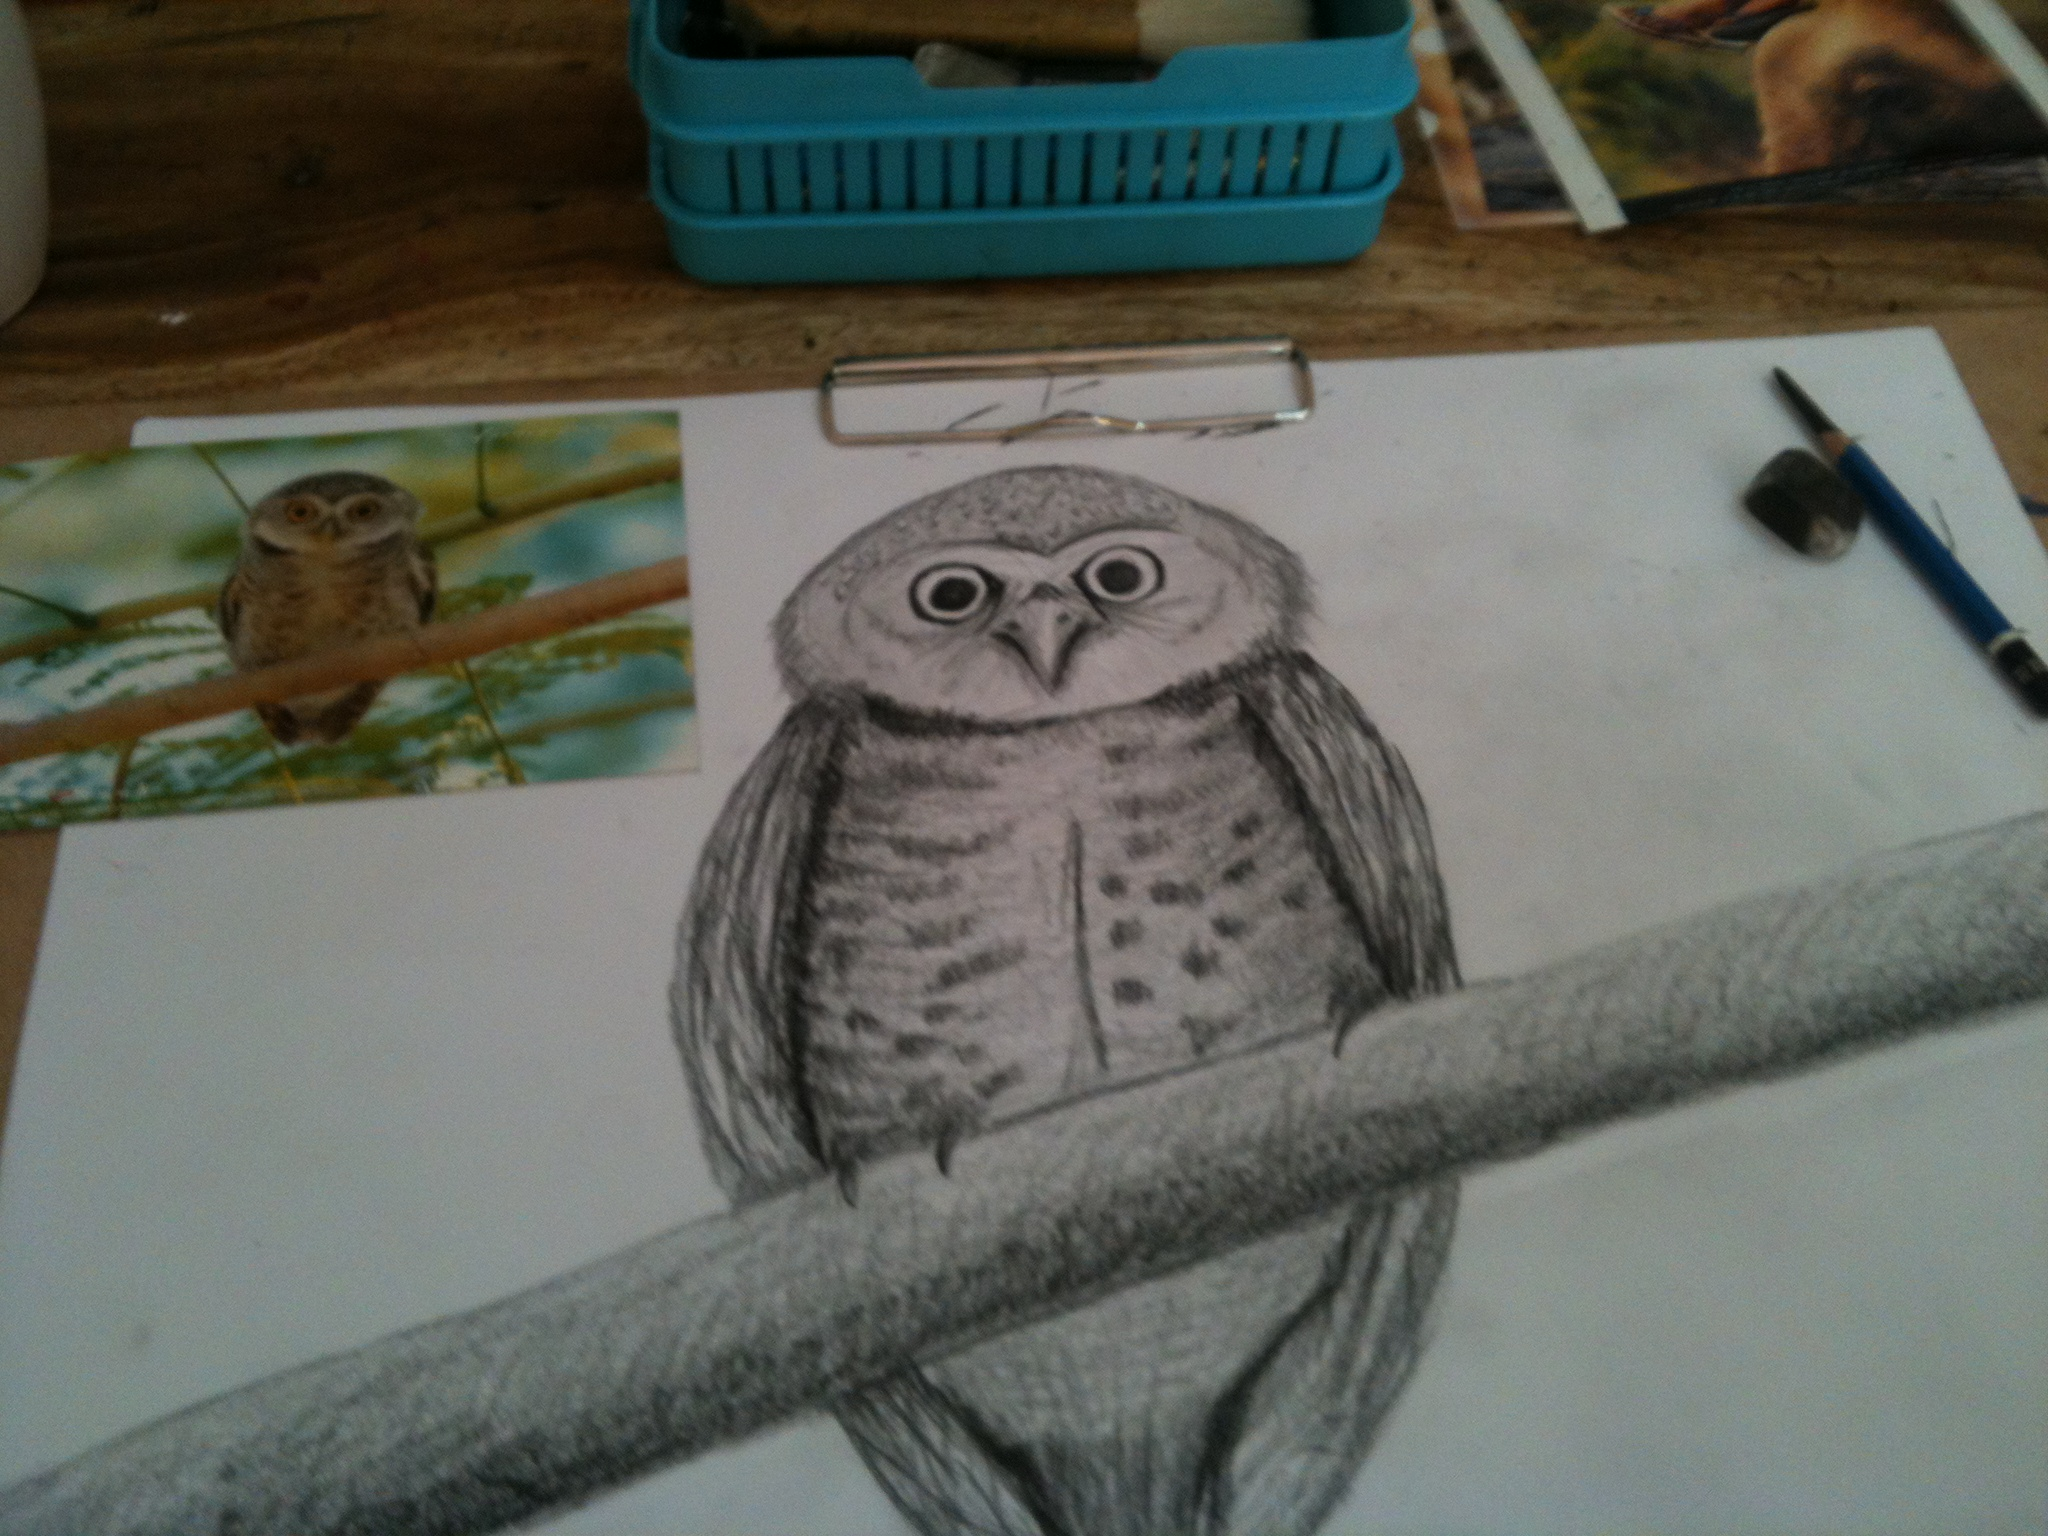 From photo: Owl